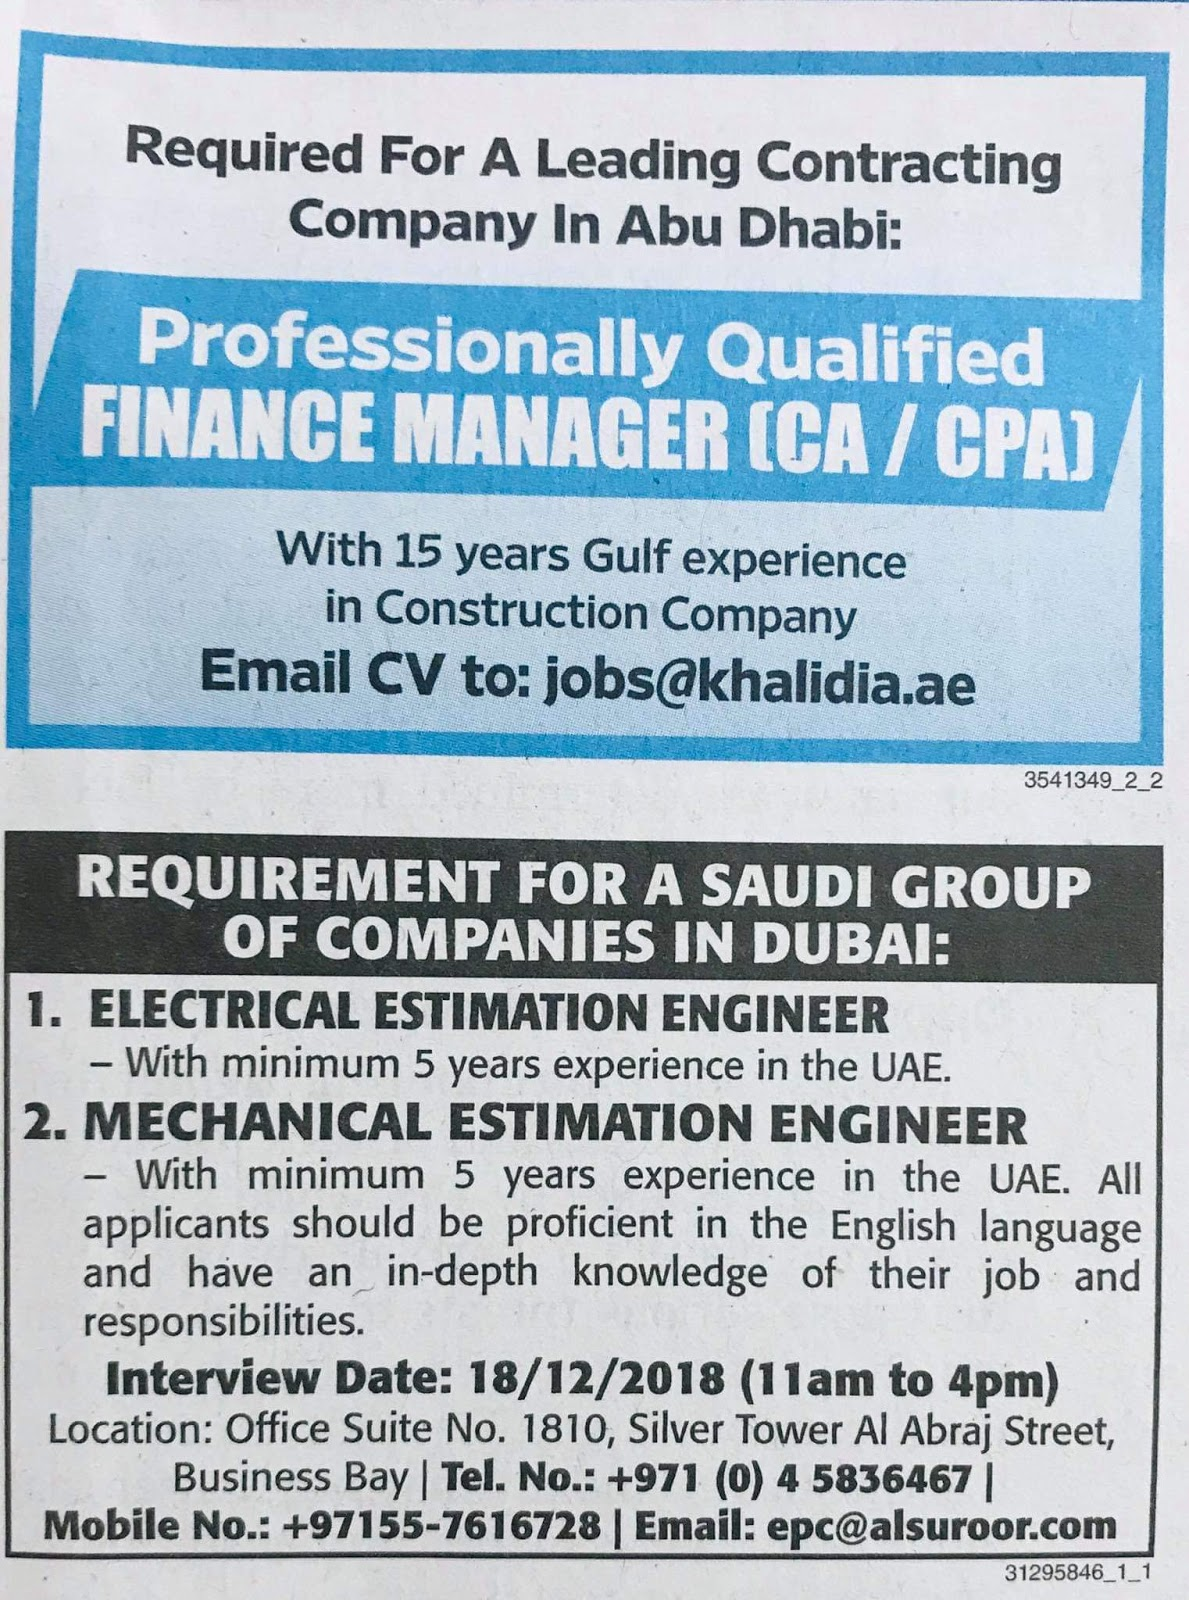 Required Electrical Engineer, Mechanical Engineer for